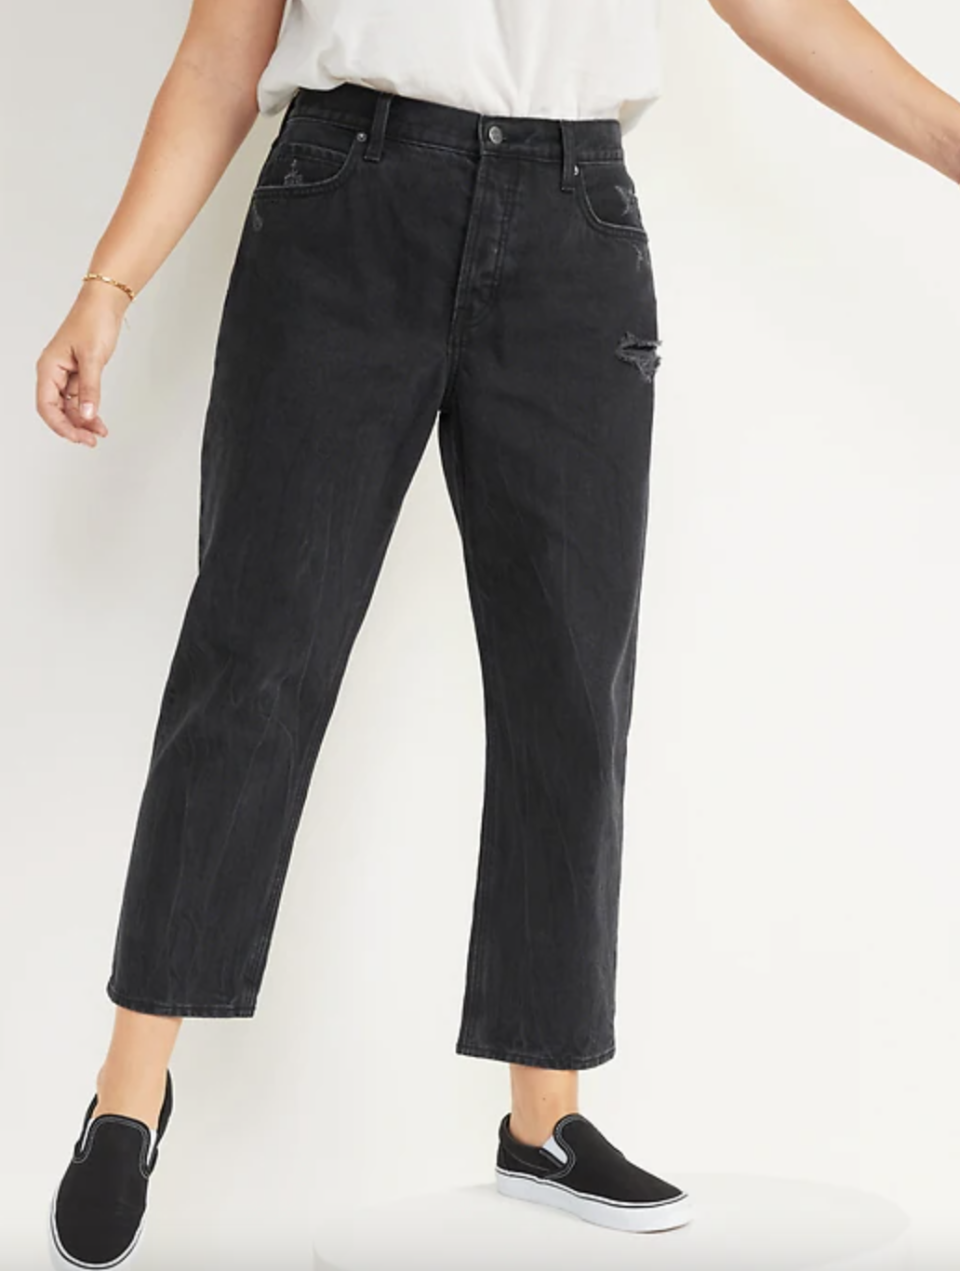 model wearing black High-Waisted Slouchy Straight Cropped Distressed Jeans and black slip-on shoes